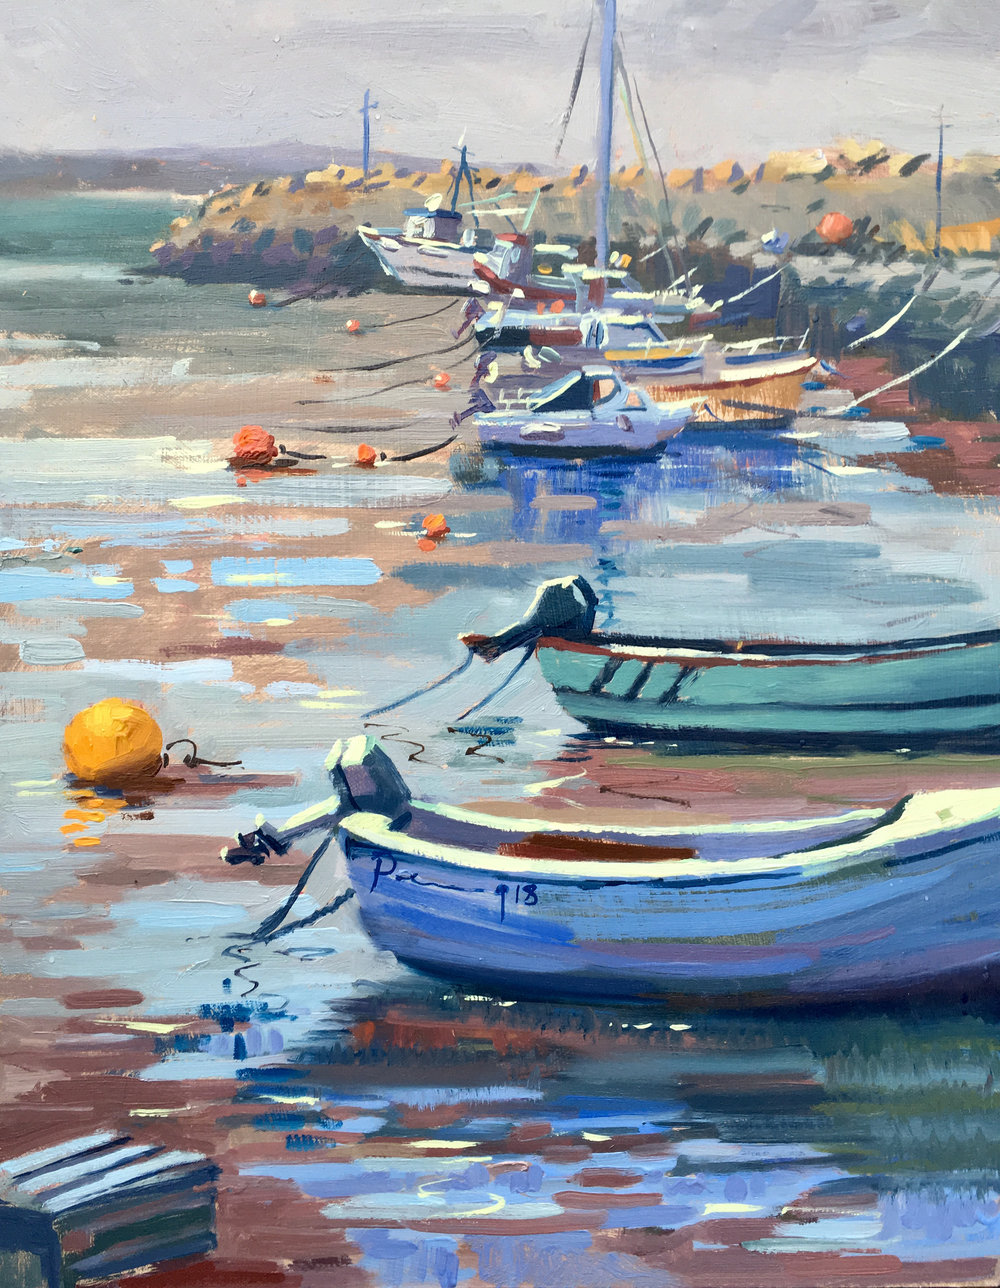 Boats at the Safe, Rosslare